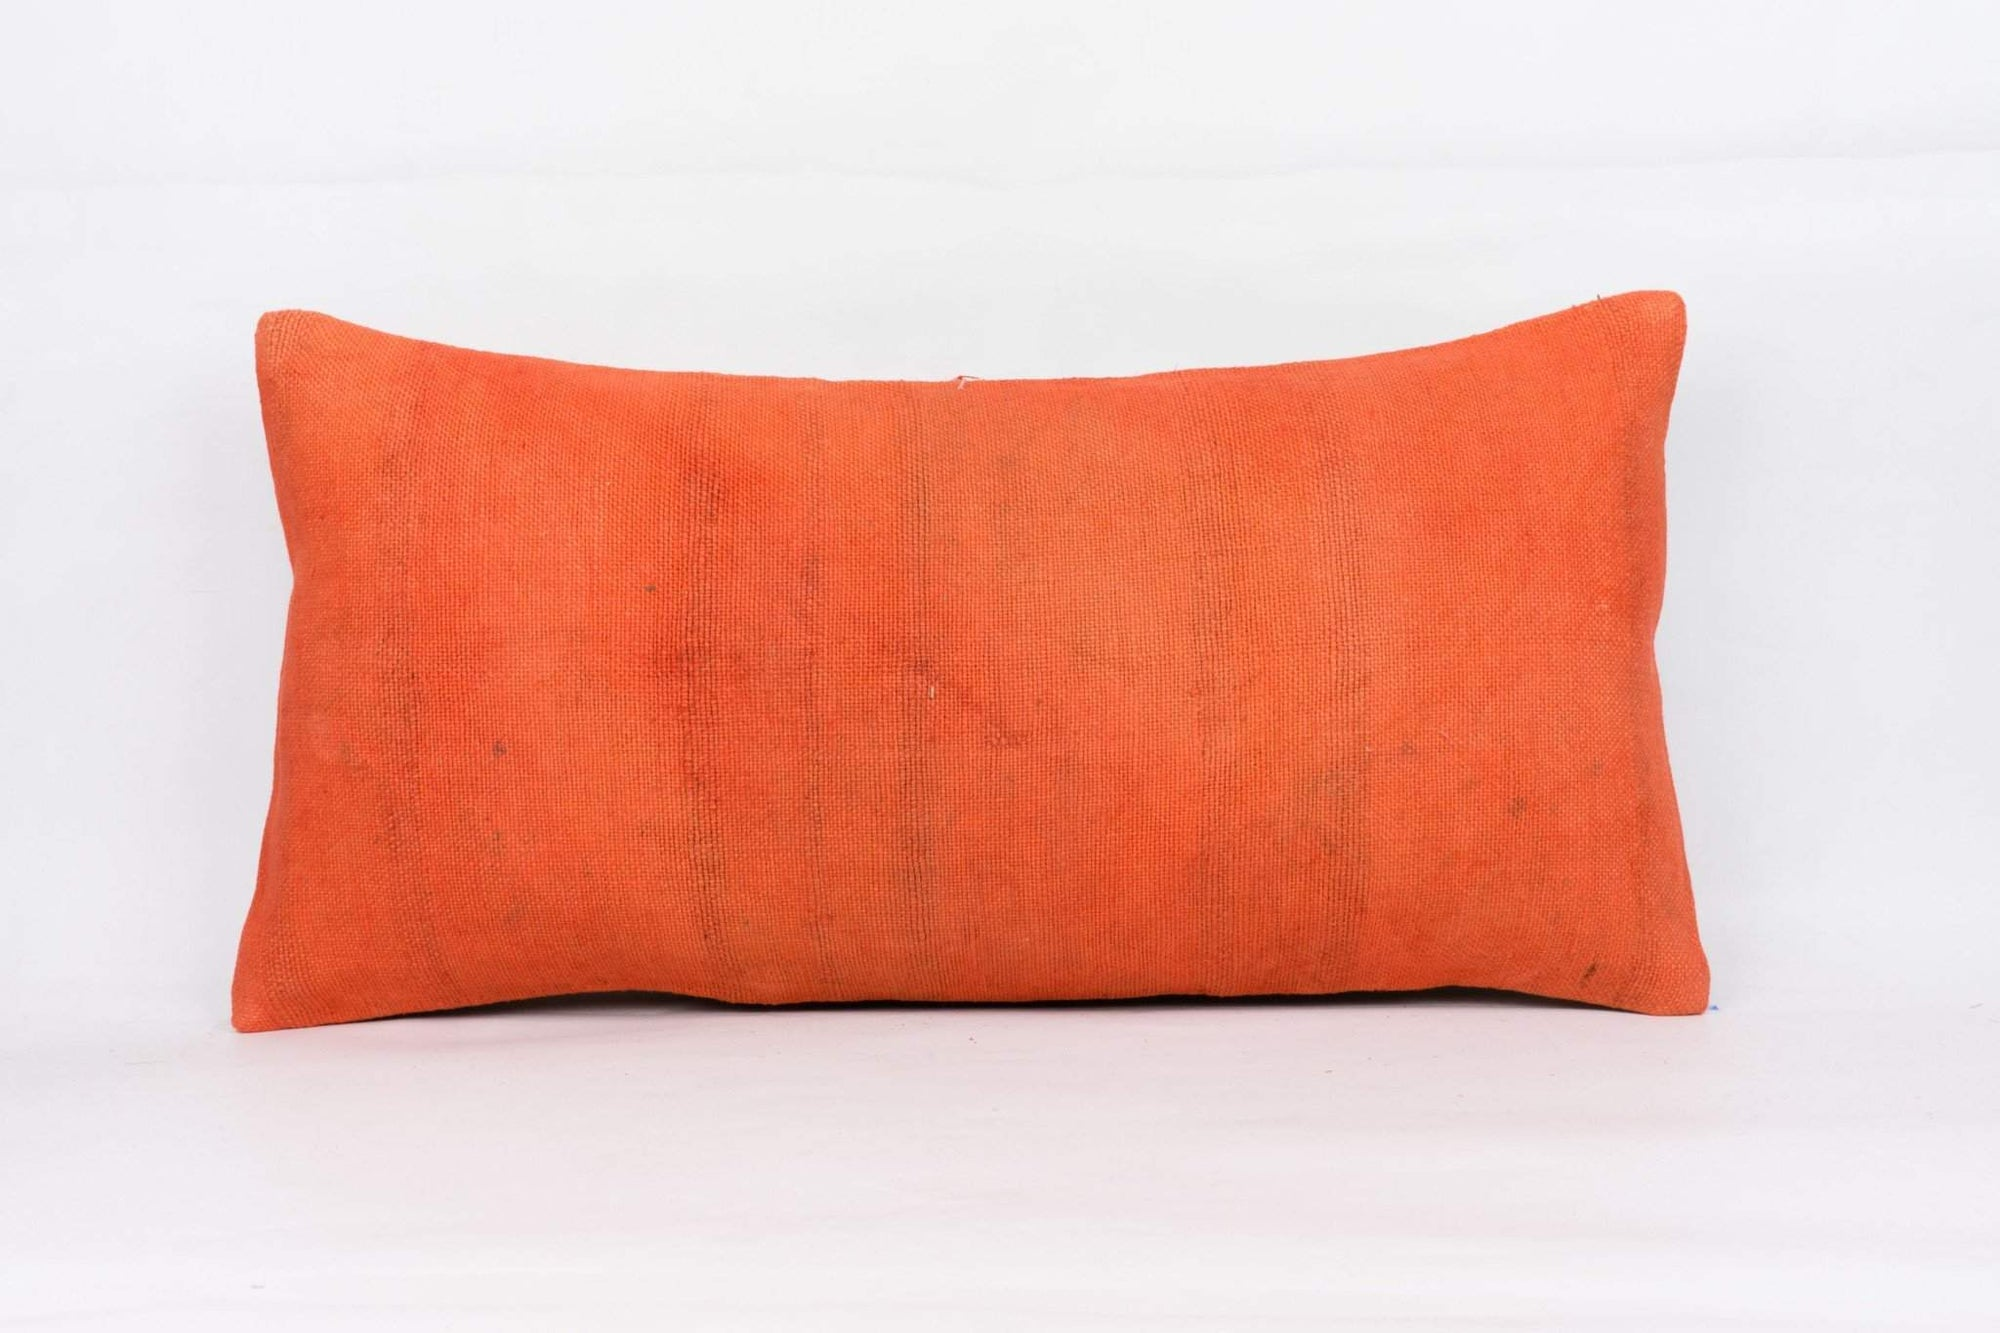 Plain Orange Kilim Pillow Cover 12x24 4162 - kilimpillowstore  - 1